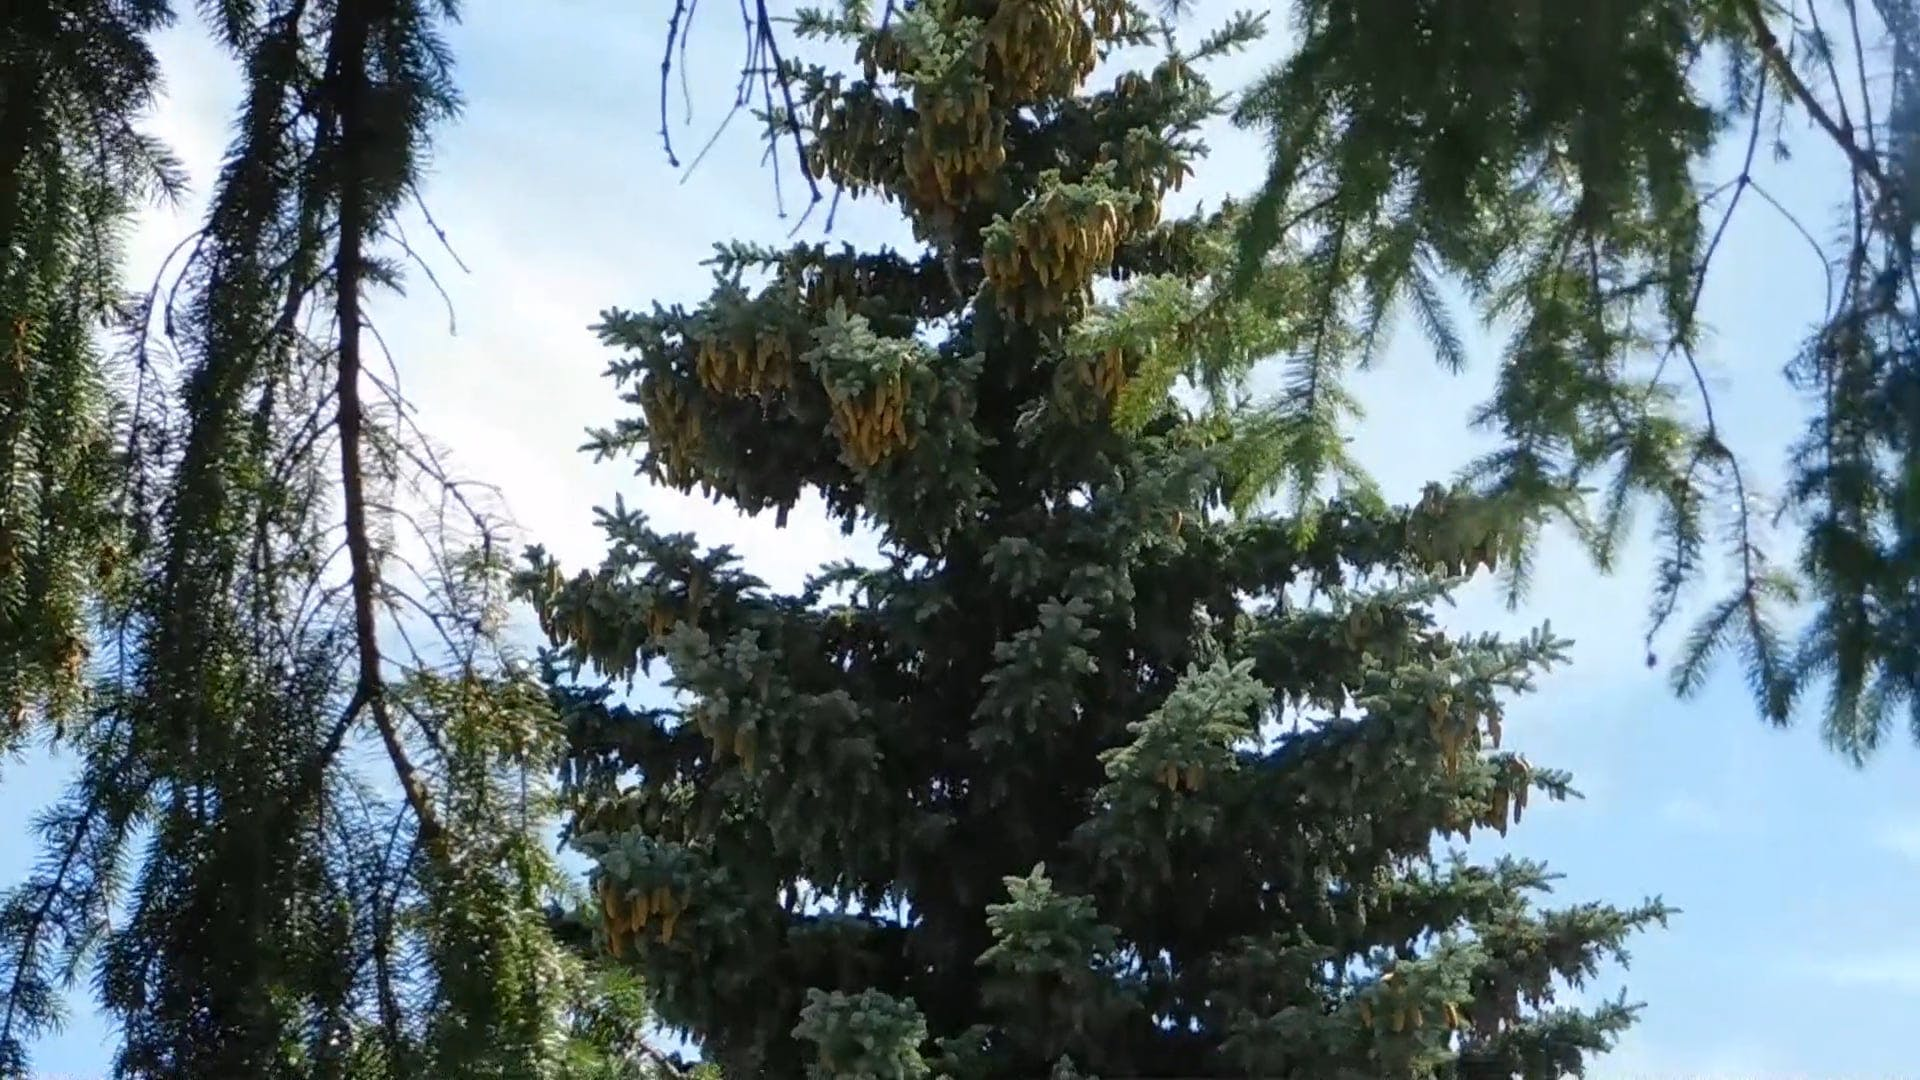 Video of Fir Tree During Daytime